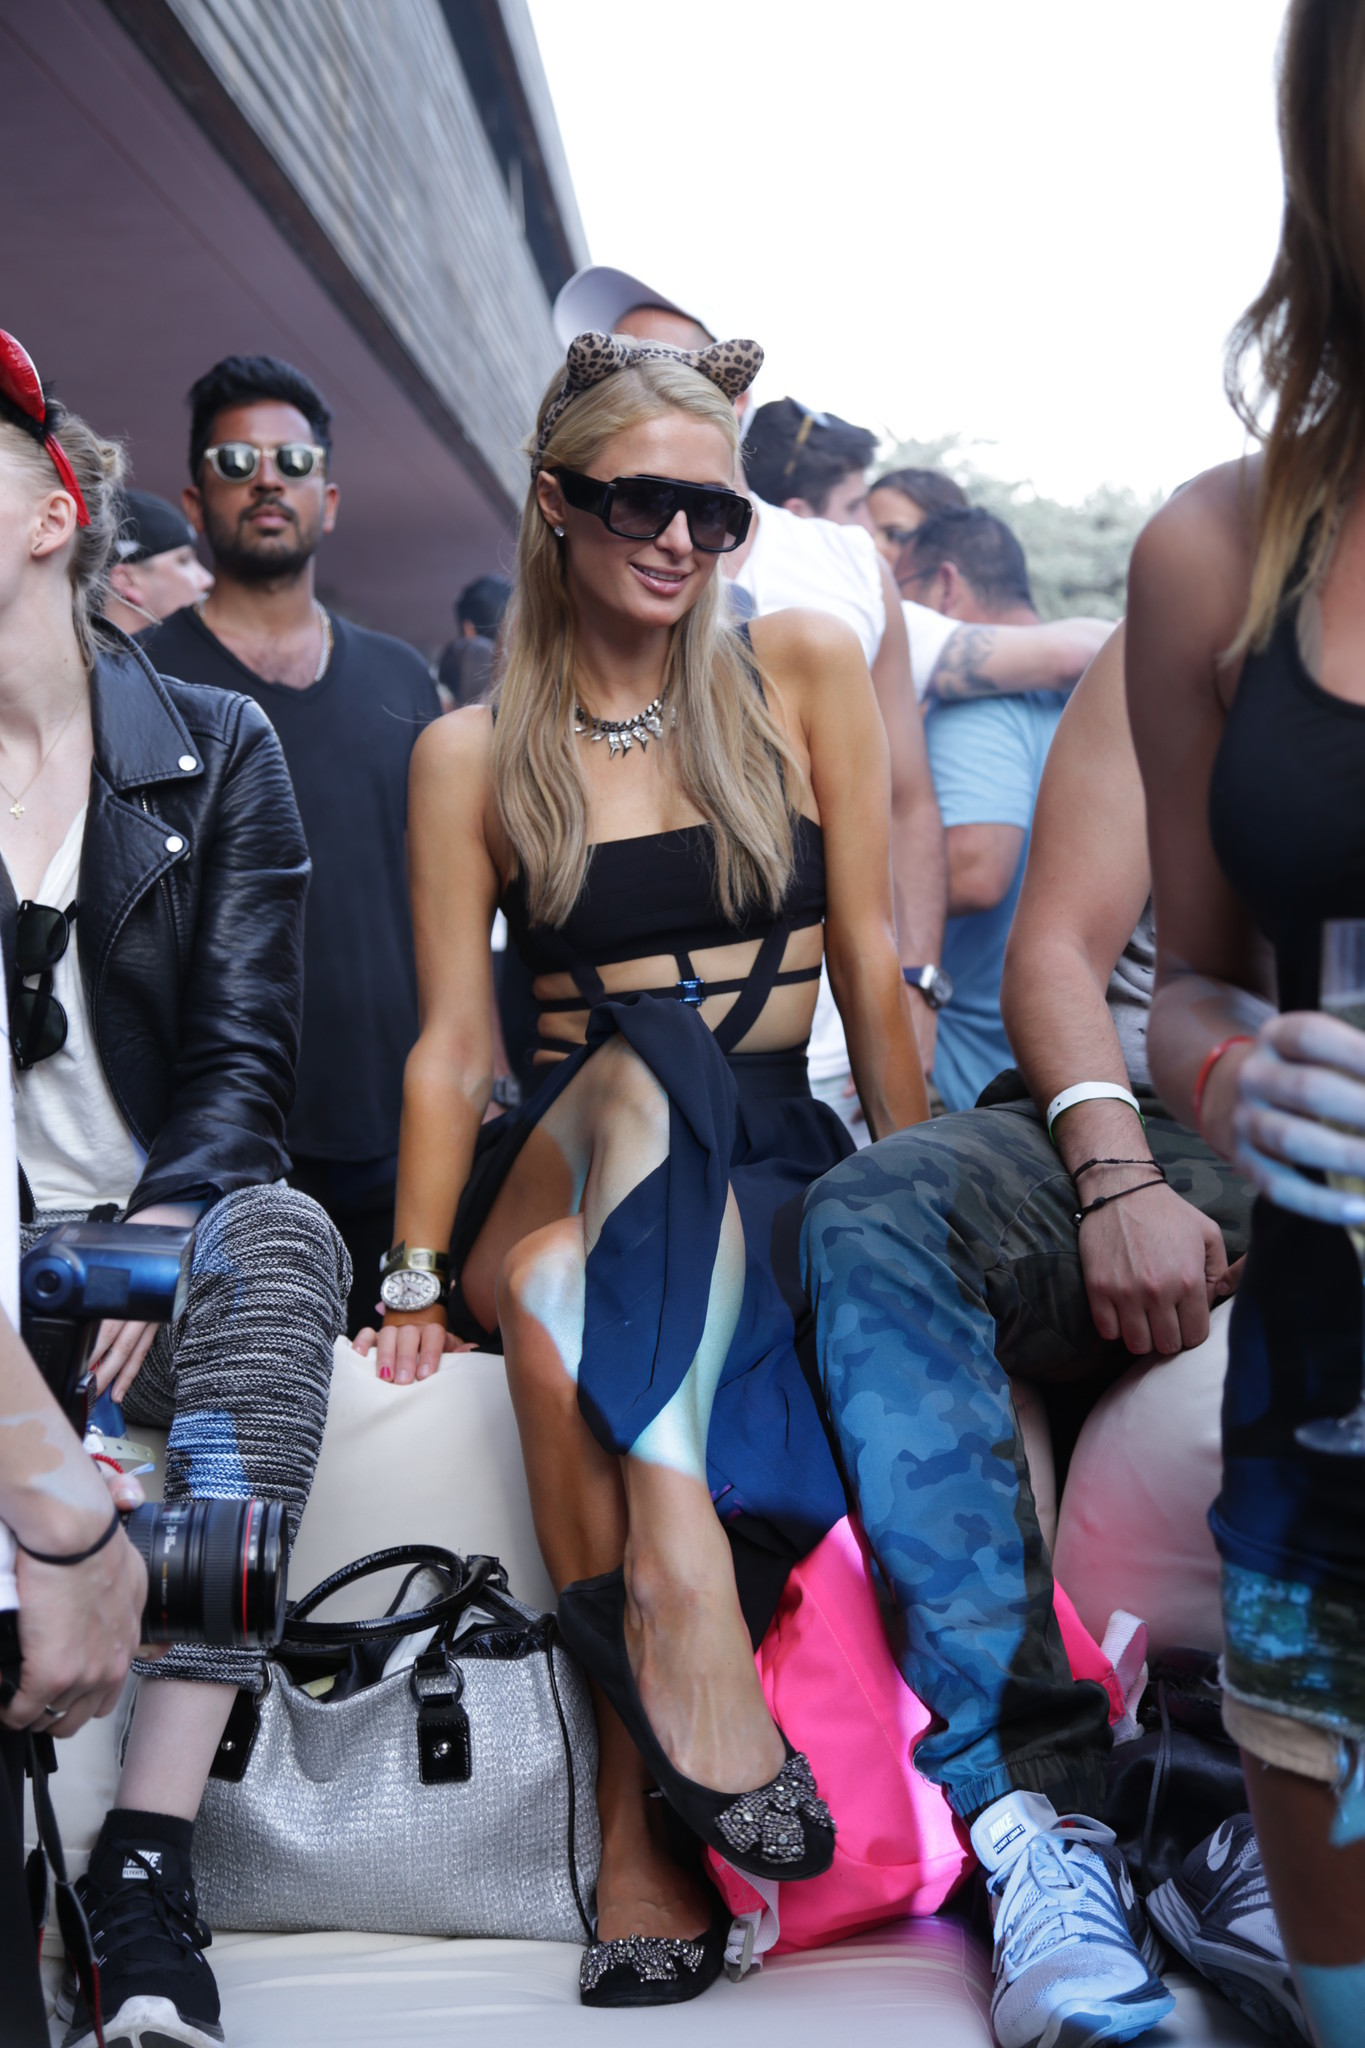 Celeb-spotting around South Florida - Paris Hilton at the Alesso at SLS South Beach